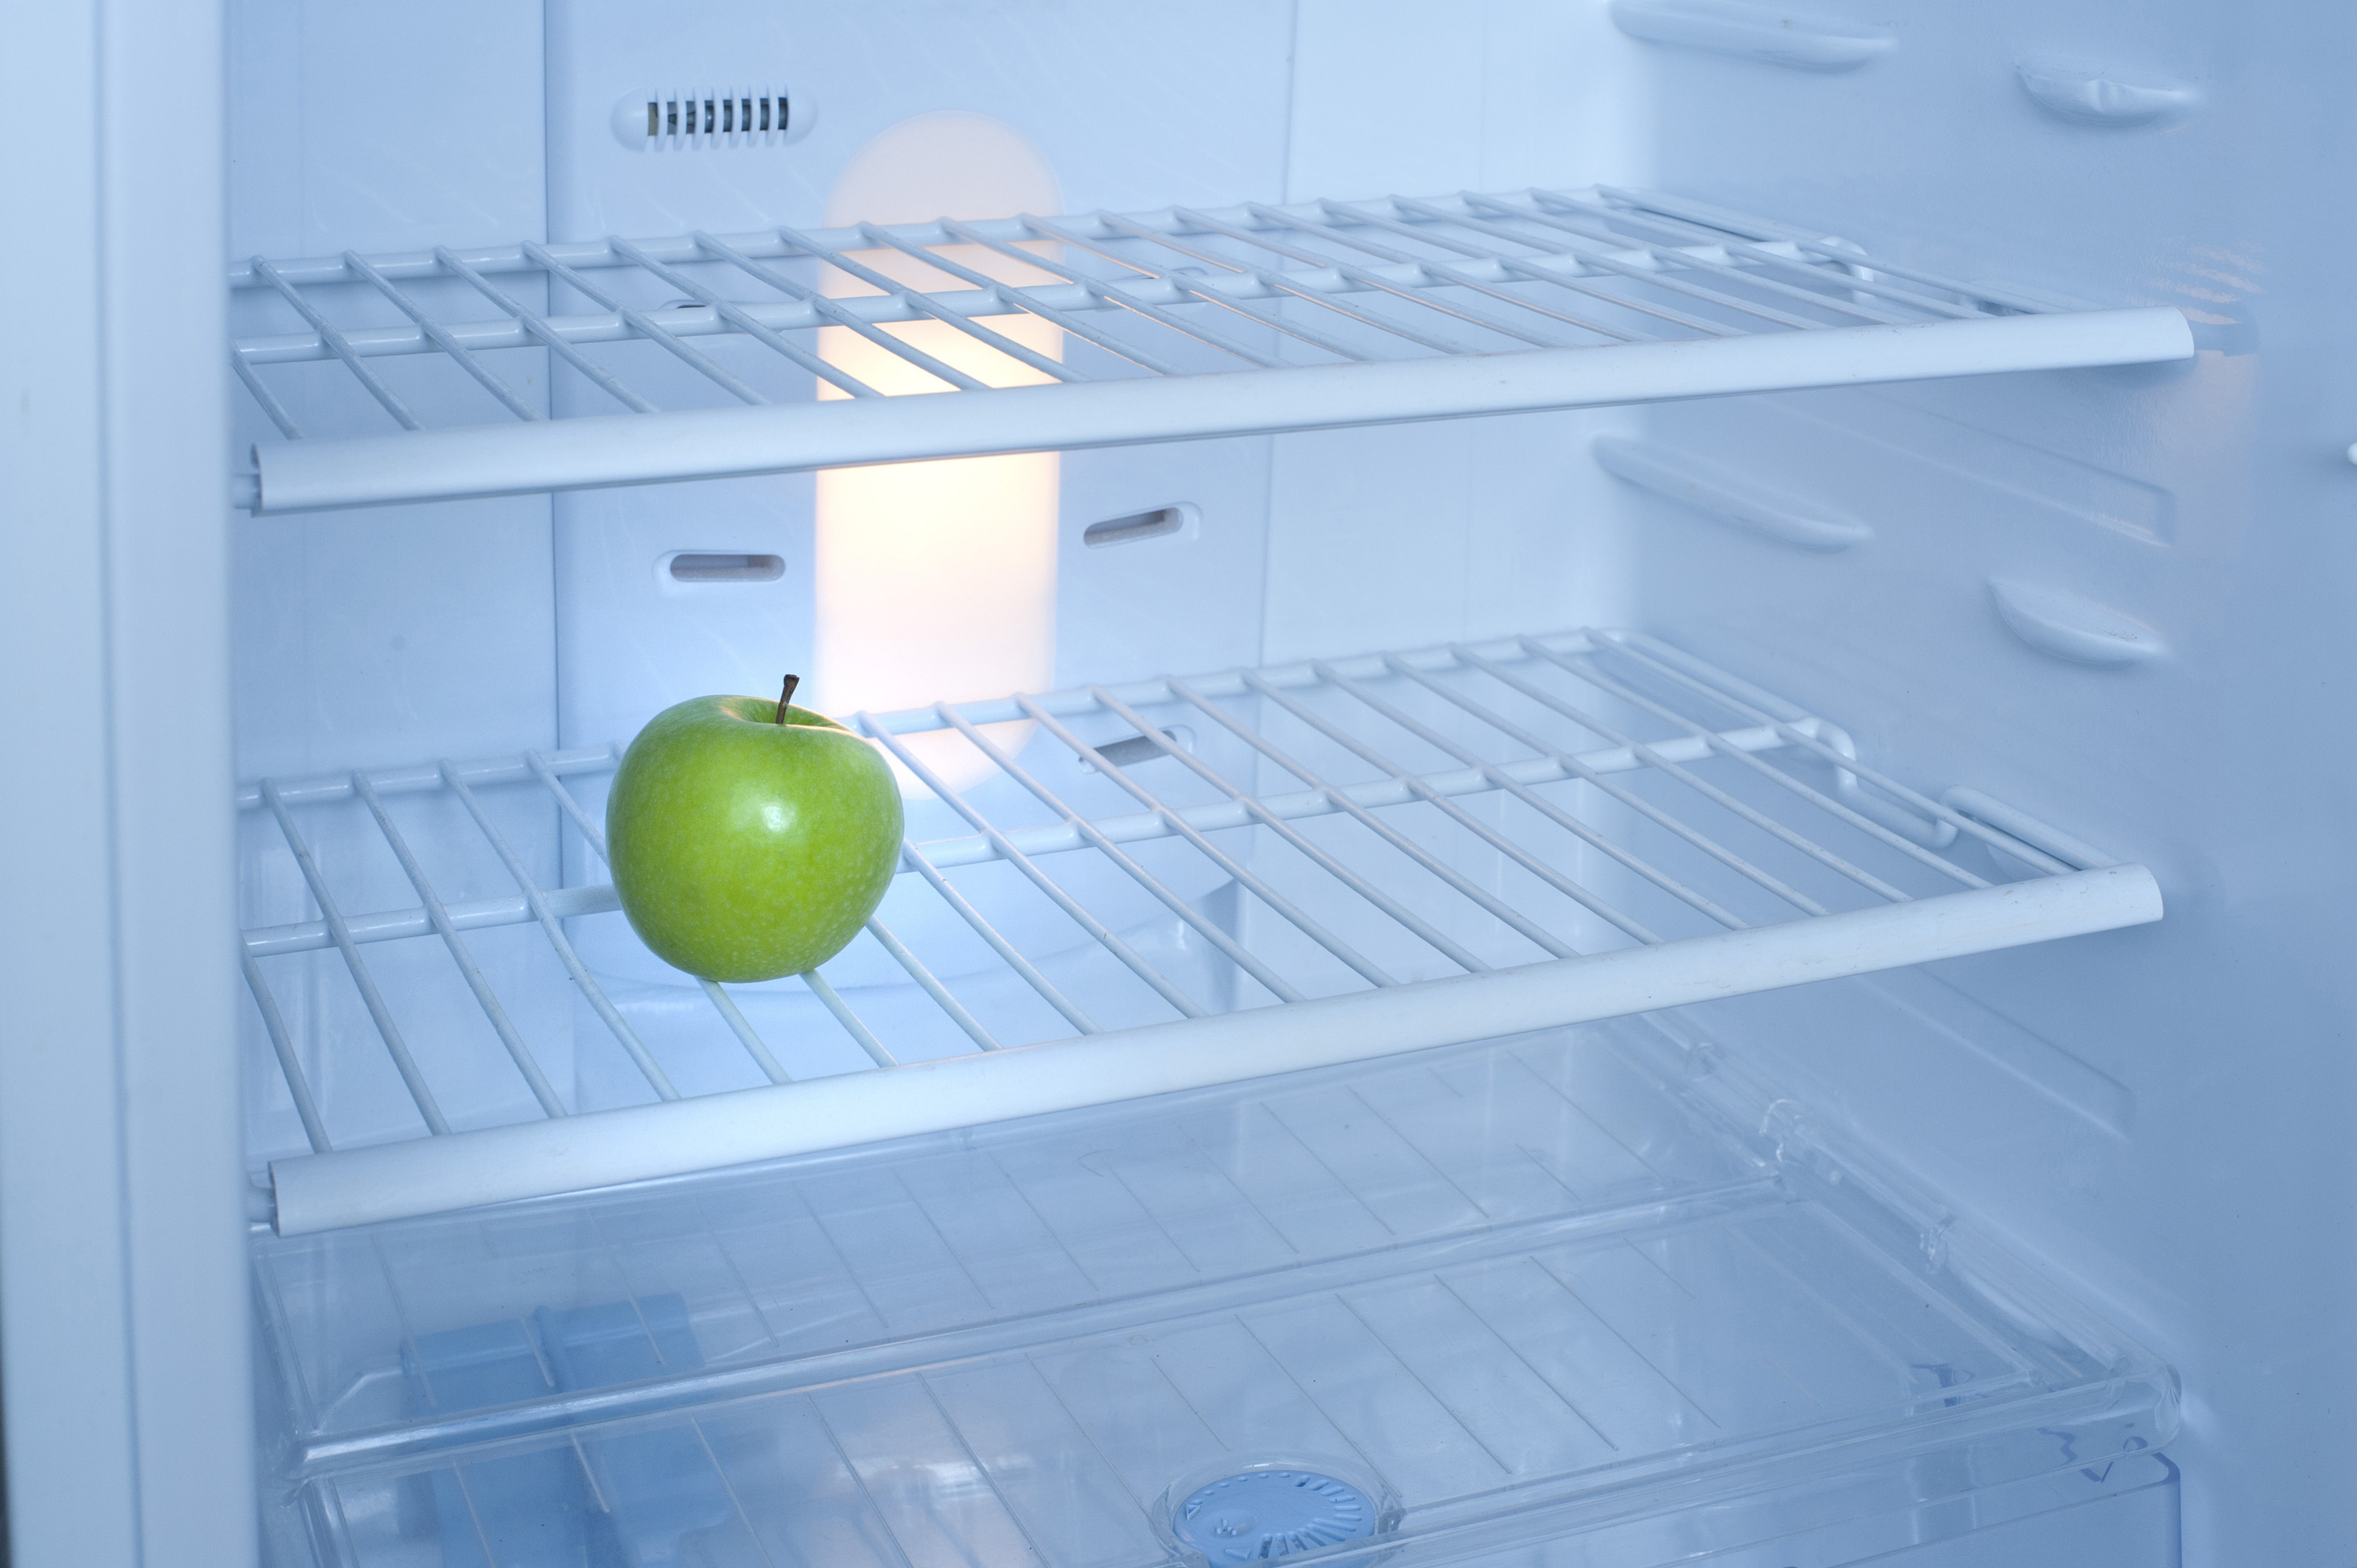 Free Stock Photo 8133 One green apple inside a fridge ...